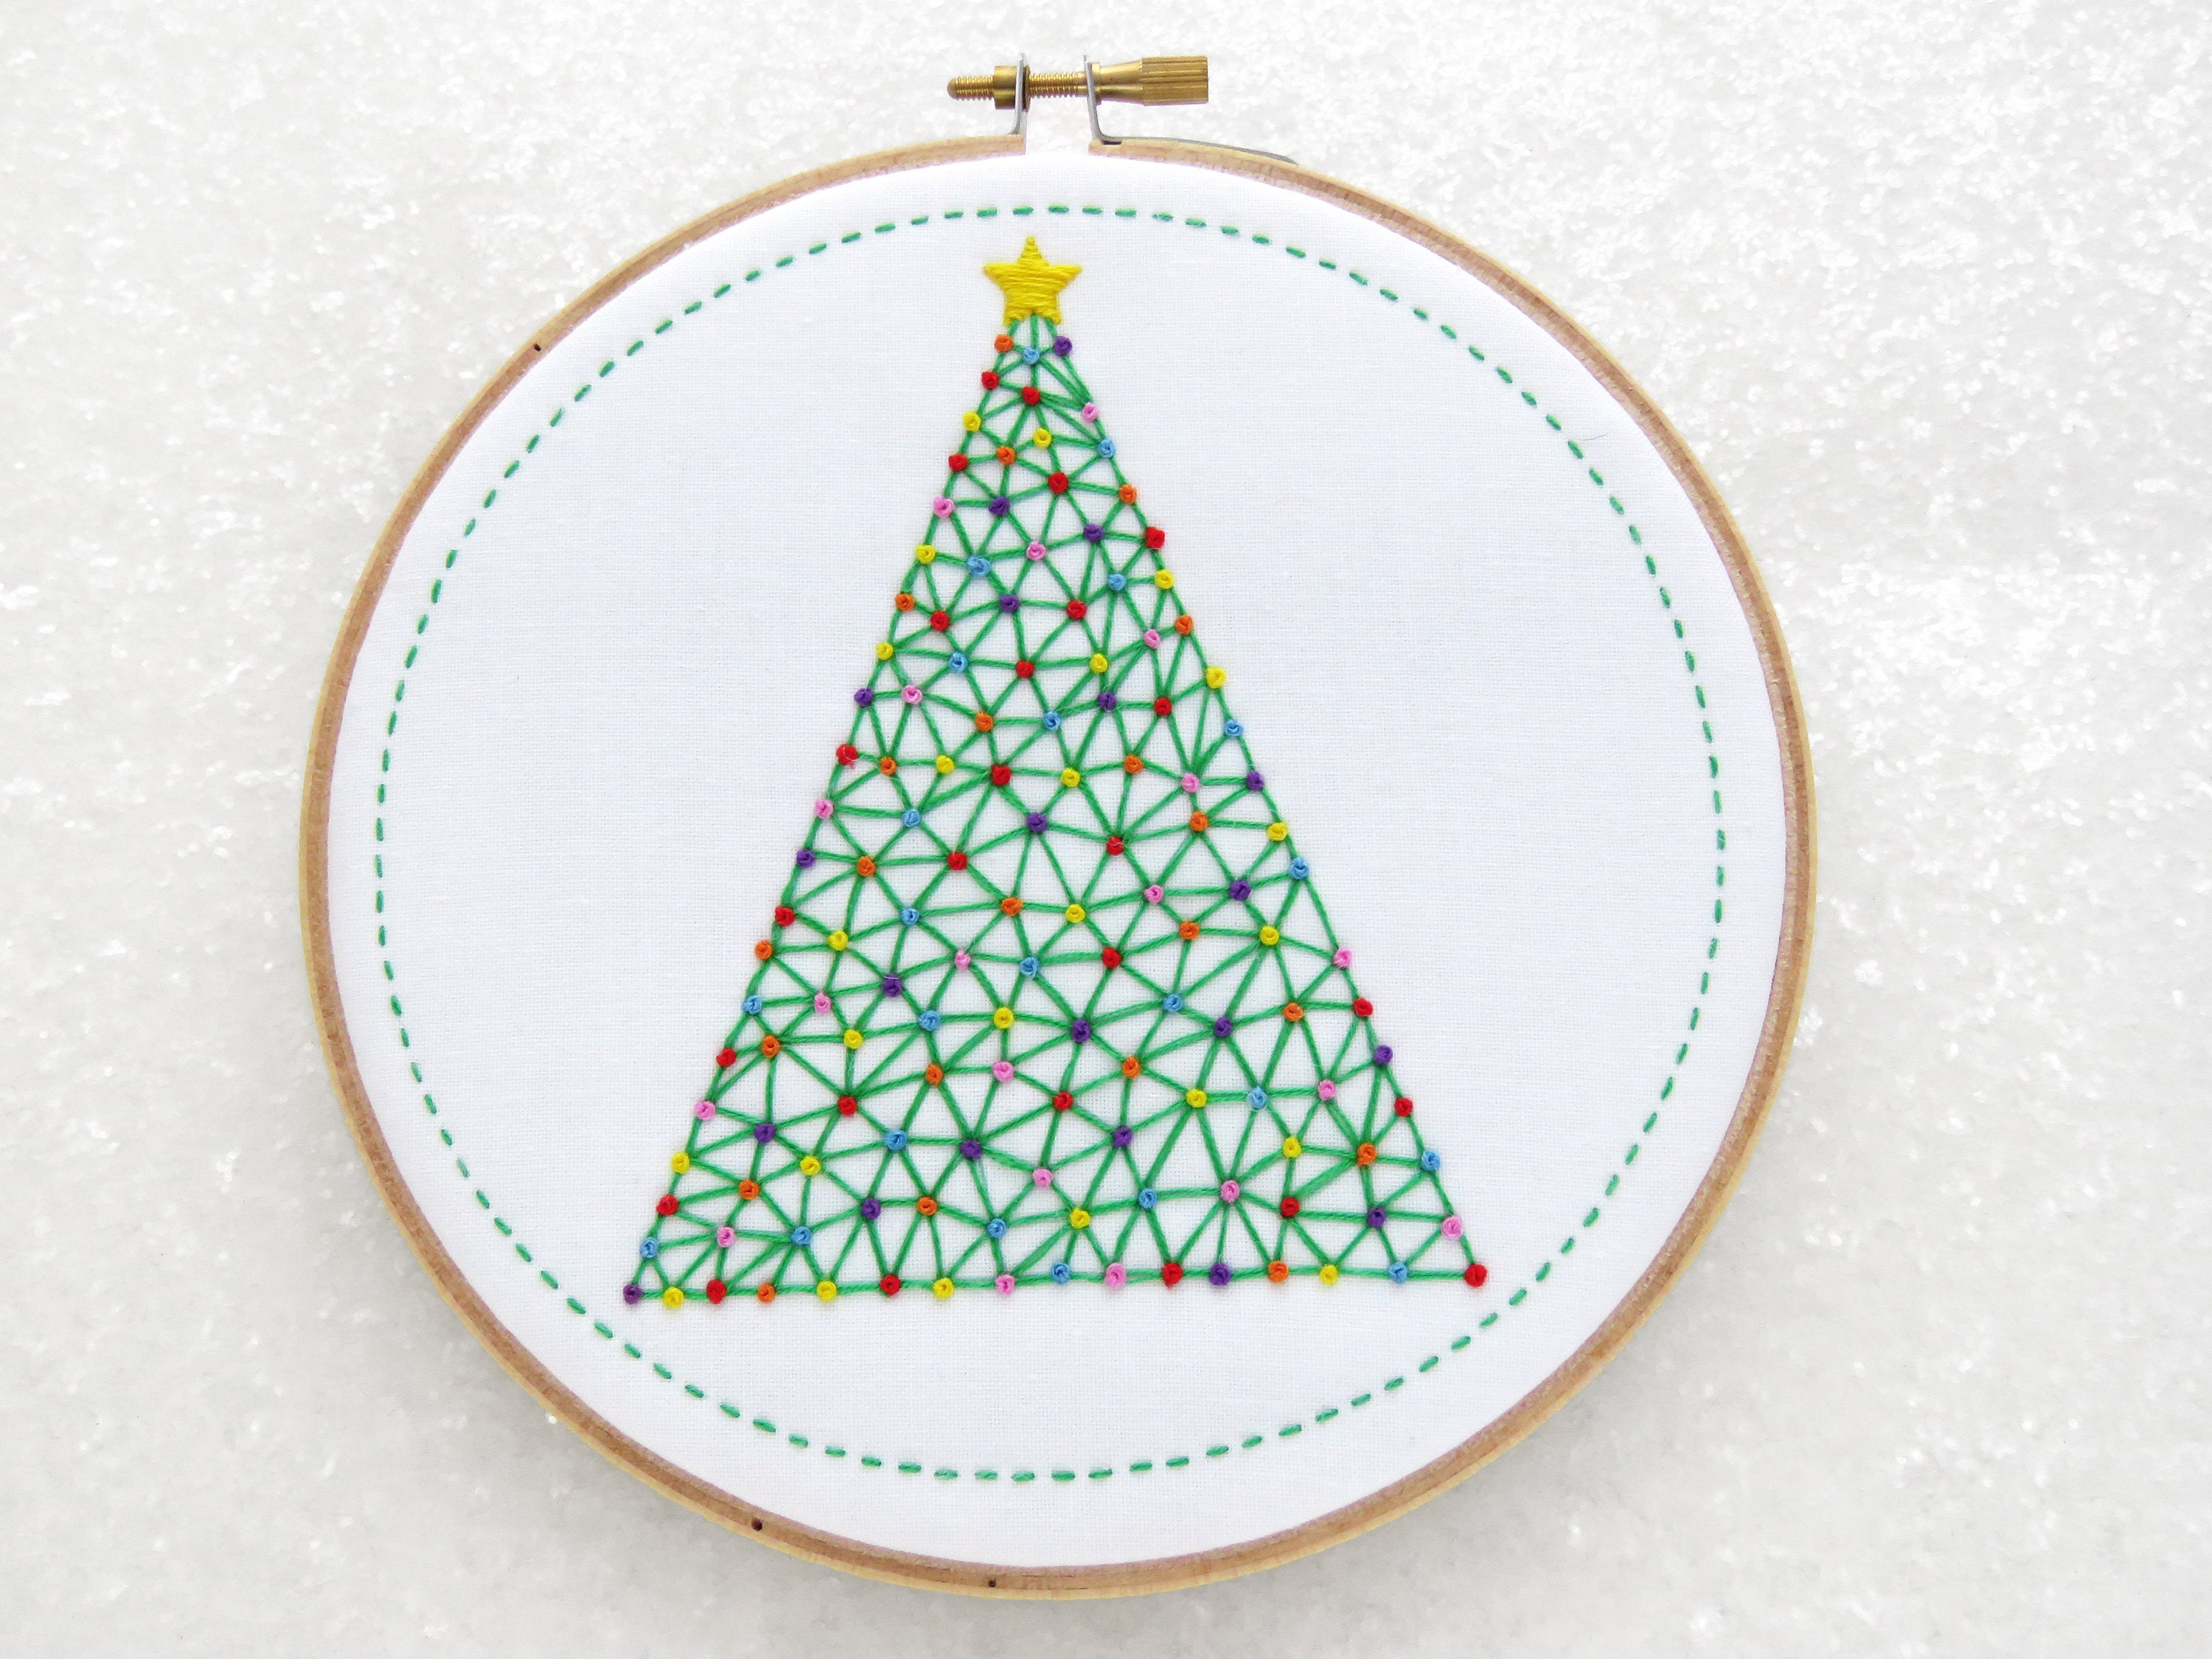 Christmas tree embroidery pattern diy christmas gift zoom bankloansurffo Choice Image